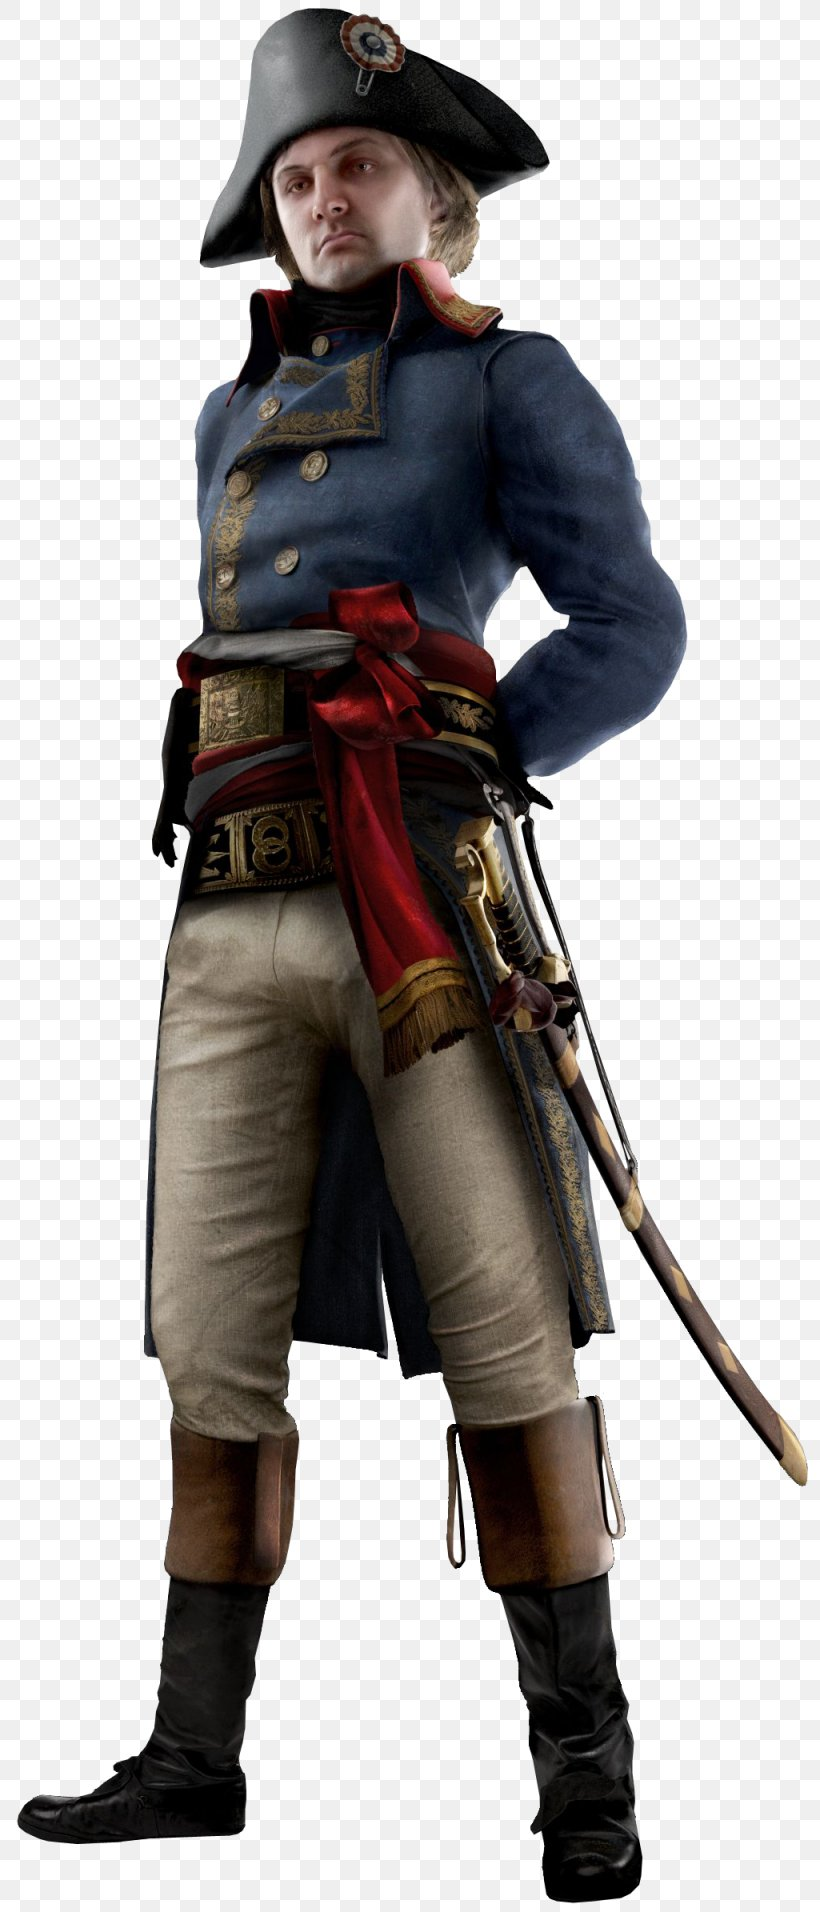 Assassin's Creed Unity Assassin's Creed Rogue Assassin's Creed: Brotherhood Assassins Assassin's Creed: Origins, PNG, 1025x2390px, Assassins, Costume, Figurine, Game, Grenadier Download Free